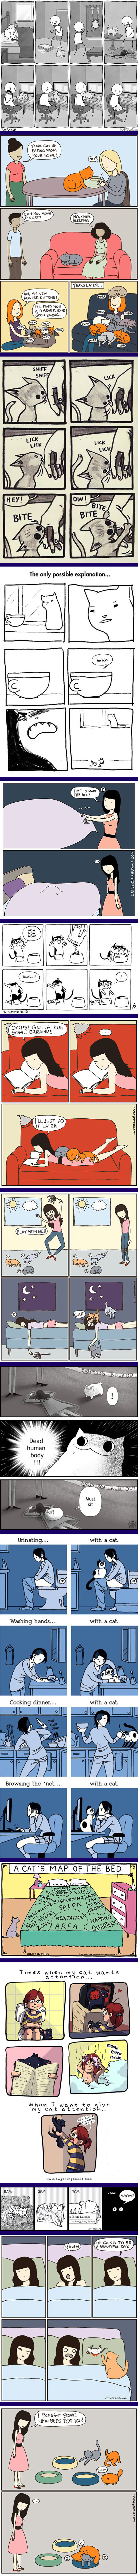 Hilarious Comics Every Pet Owner Will Understand Dog Gone - 10 funny illustrations every dog owner will relate to